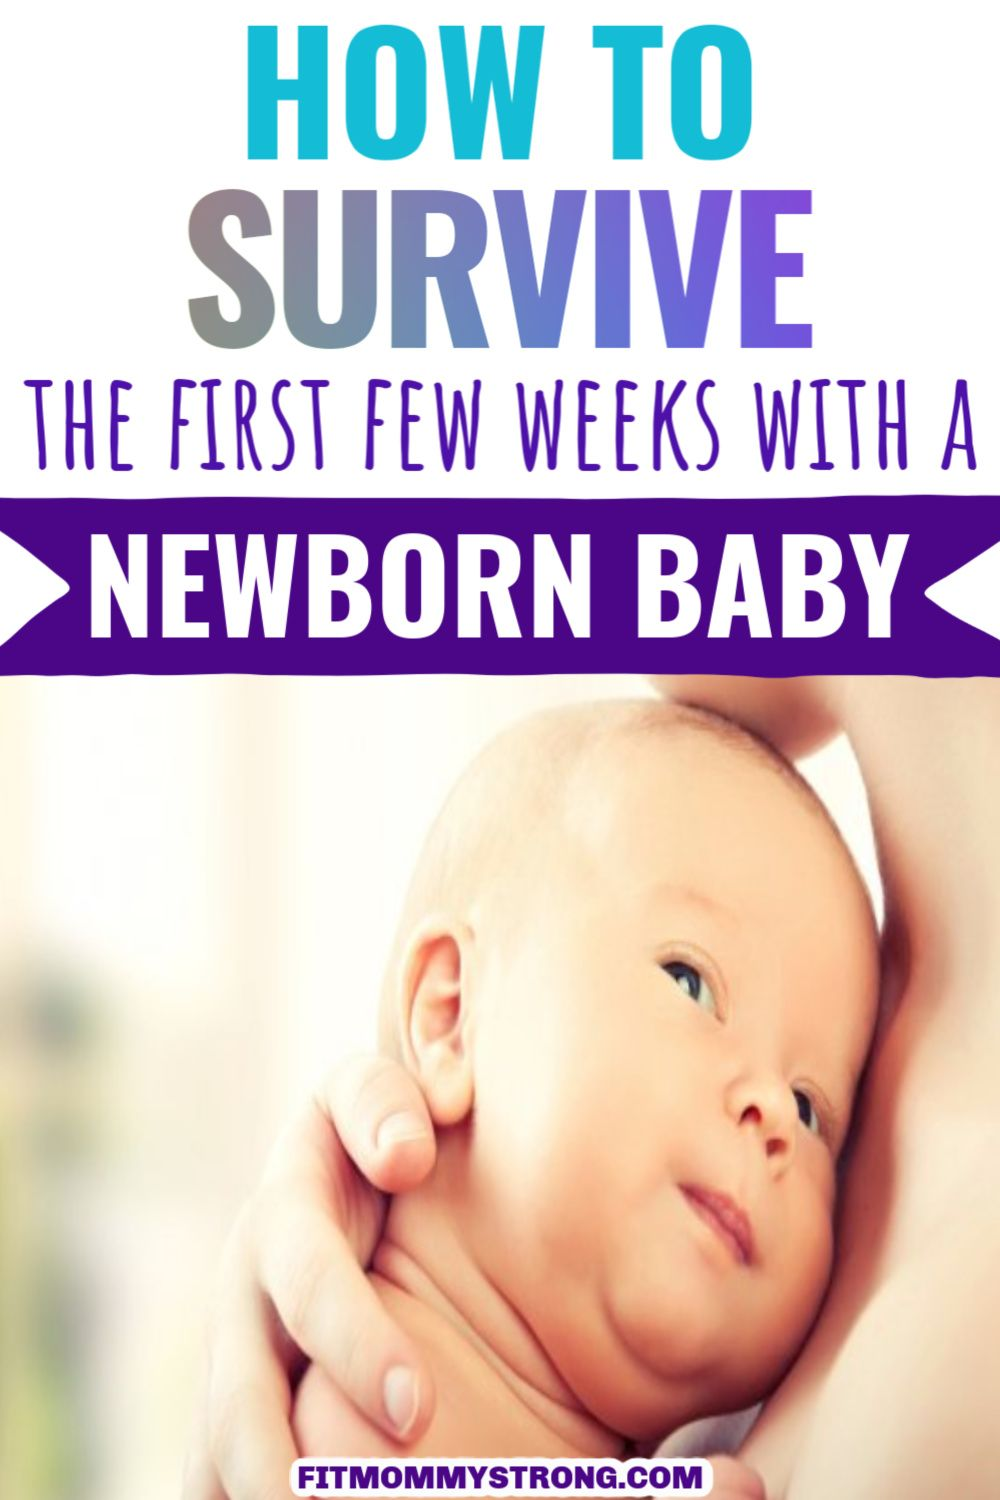 Tips to survive the first week with newborn at home